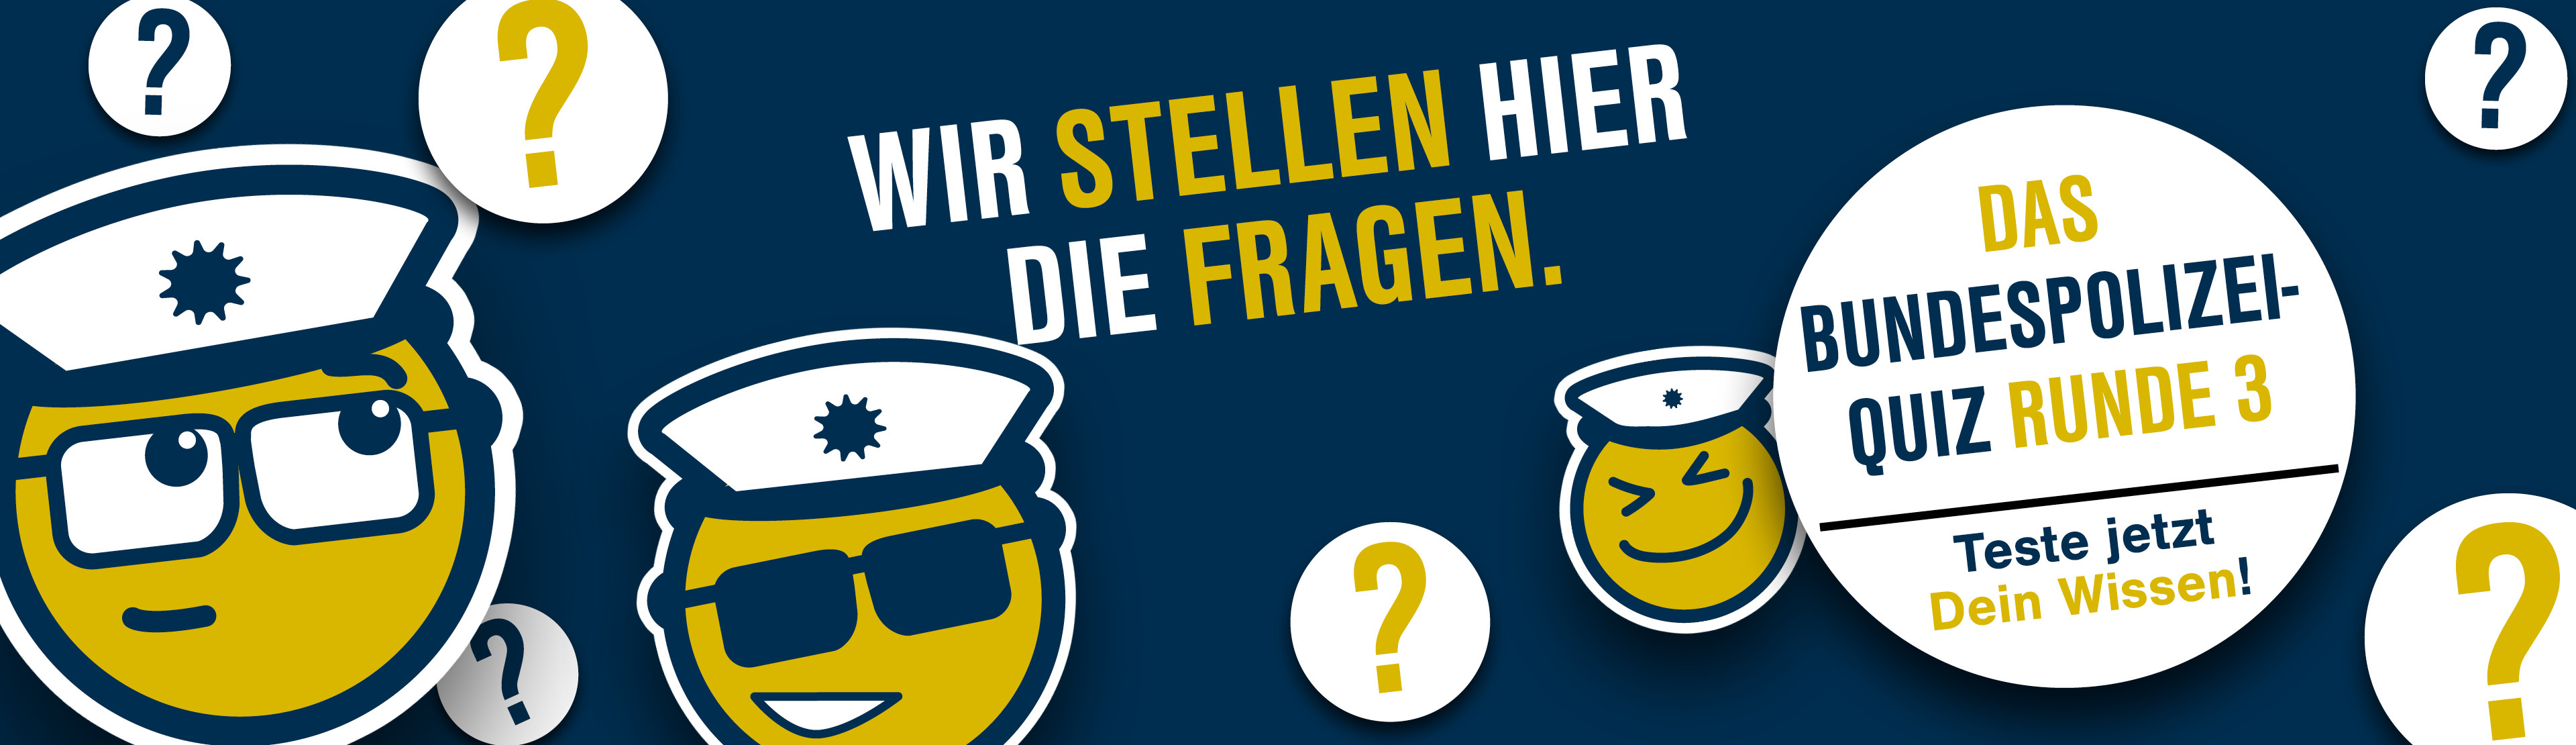 Header - Bundespolizei-Quiz Runde 3